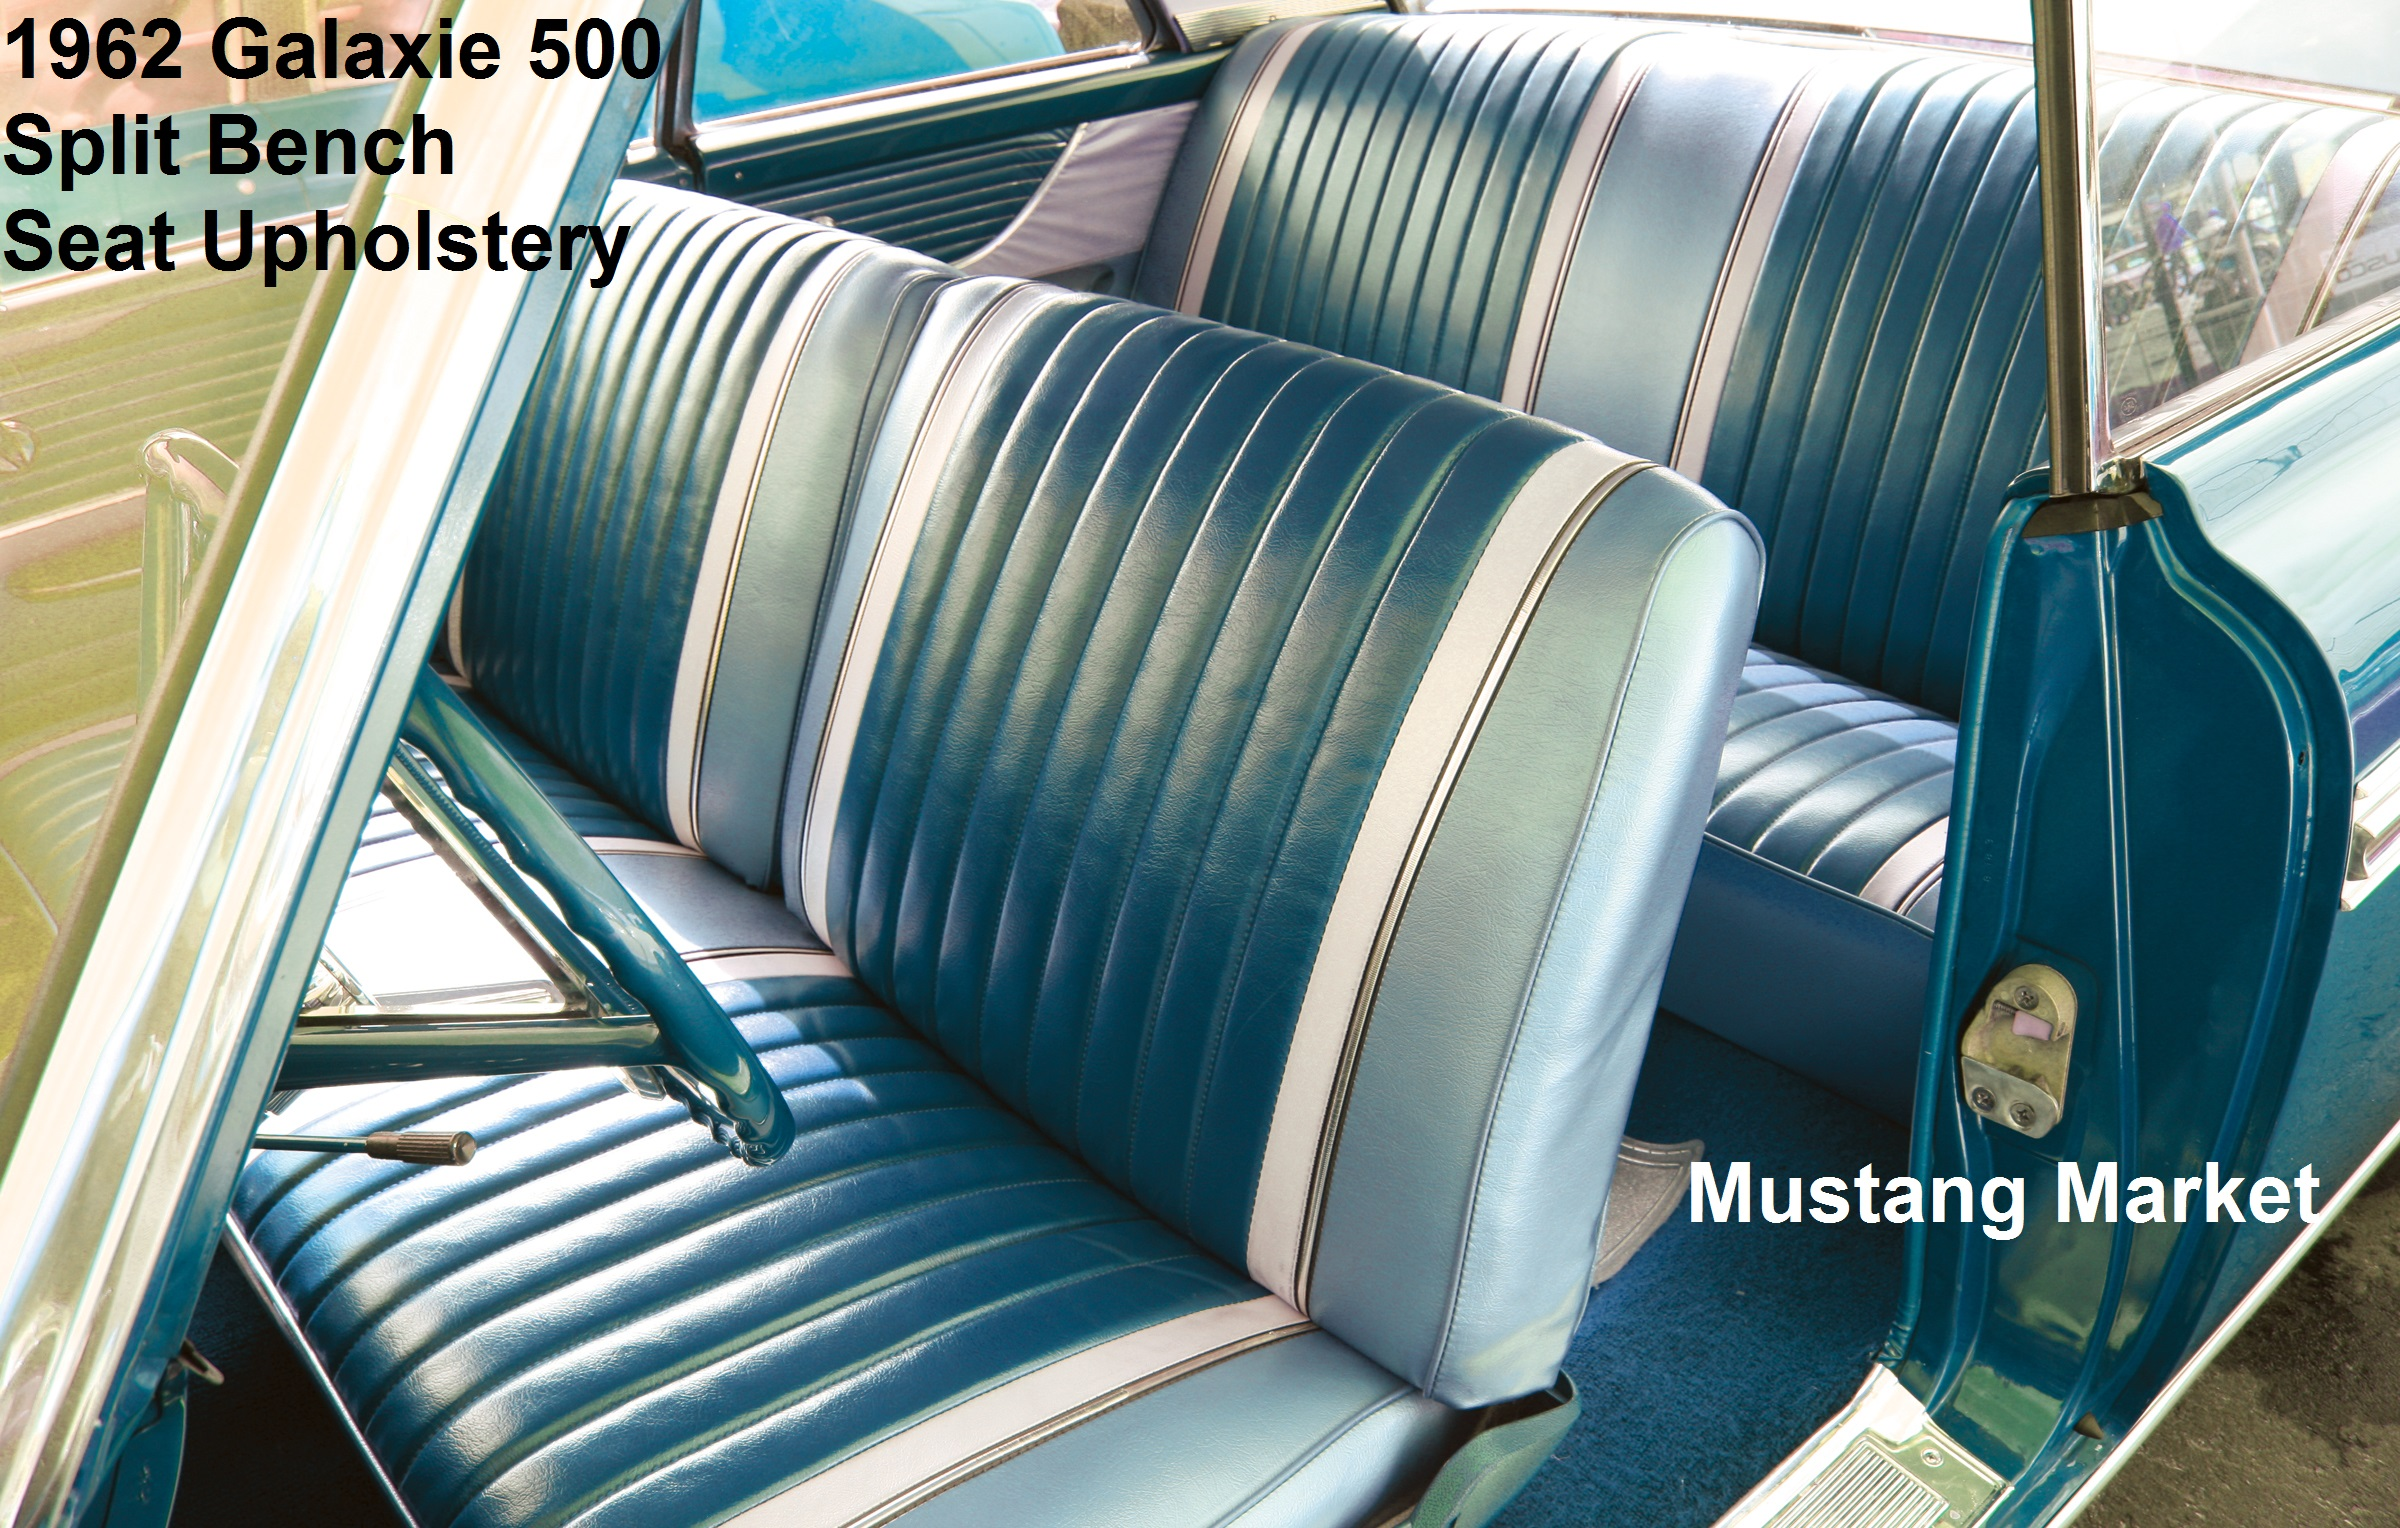 1962 Galaxie 500 Bench Seat Upholstery